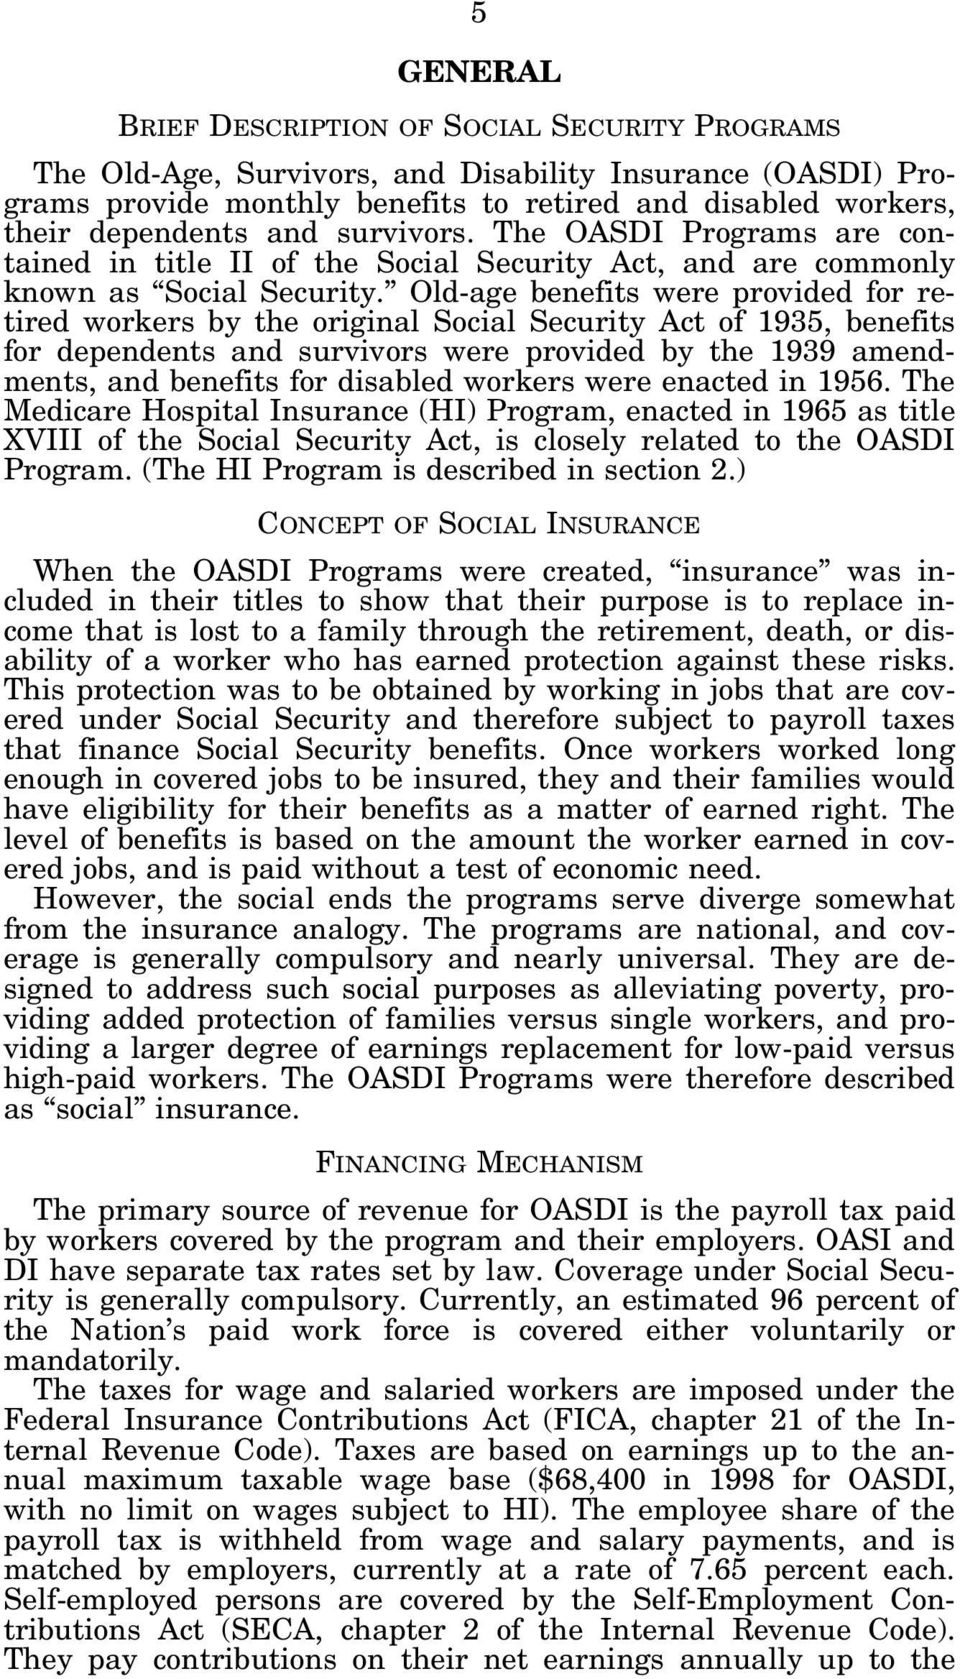 Old-age benefits were provided for retired workers by the original Social Security Act of 1935, benefits for dependents and survivors were provided by the 1939 amendments, and benefits for disabled